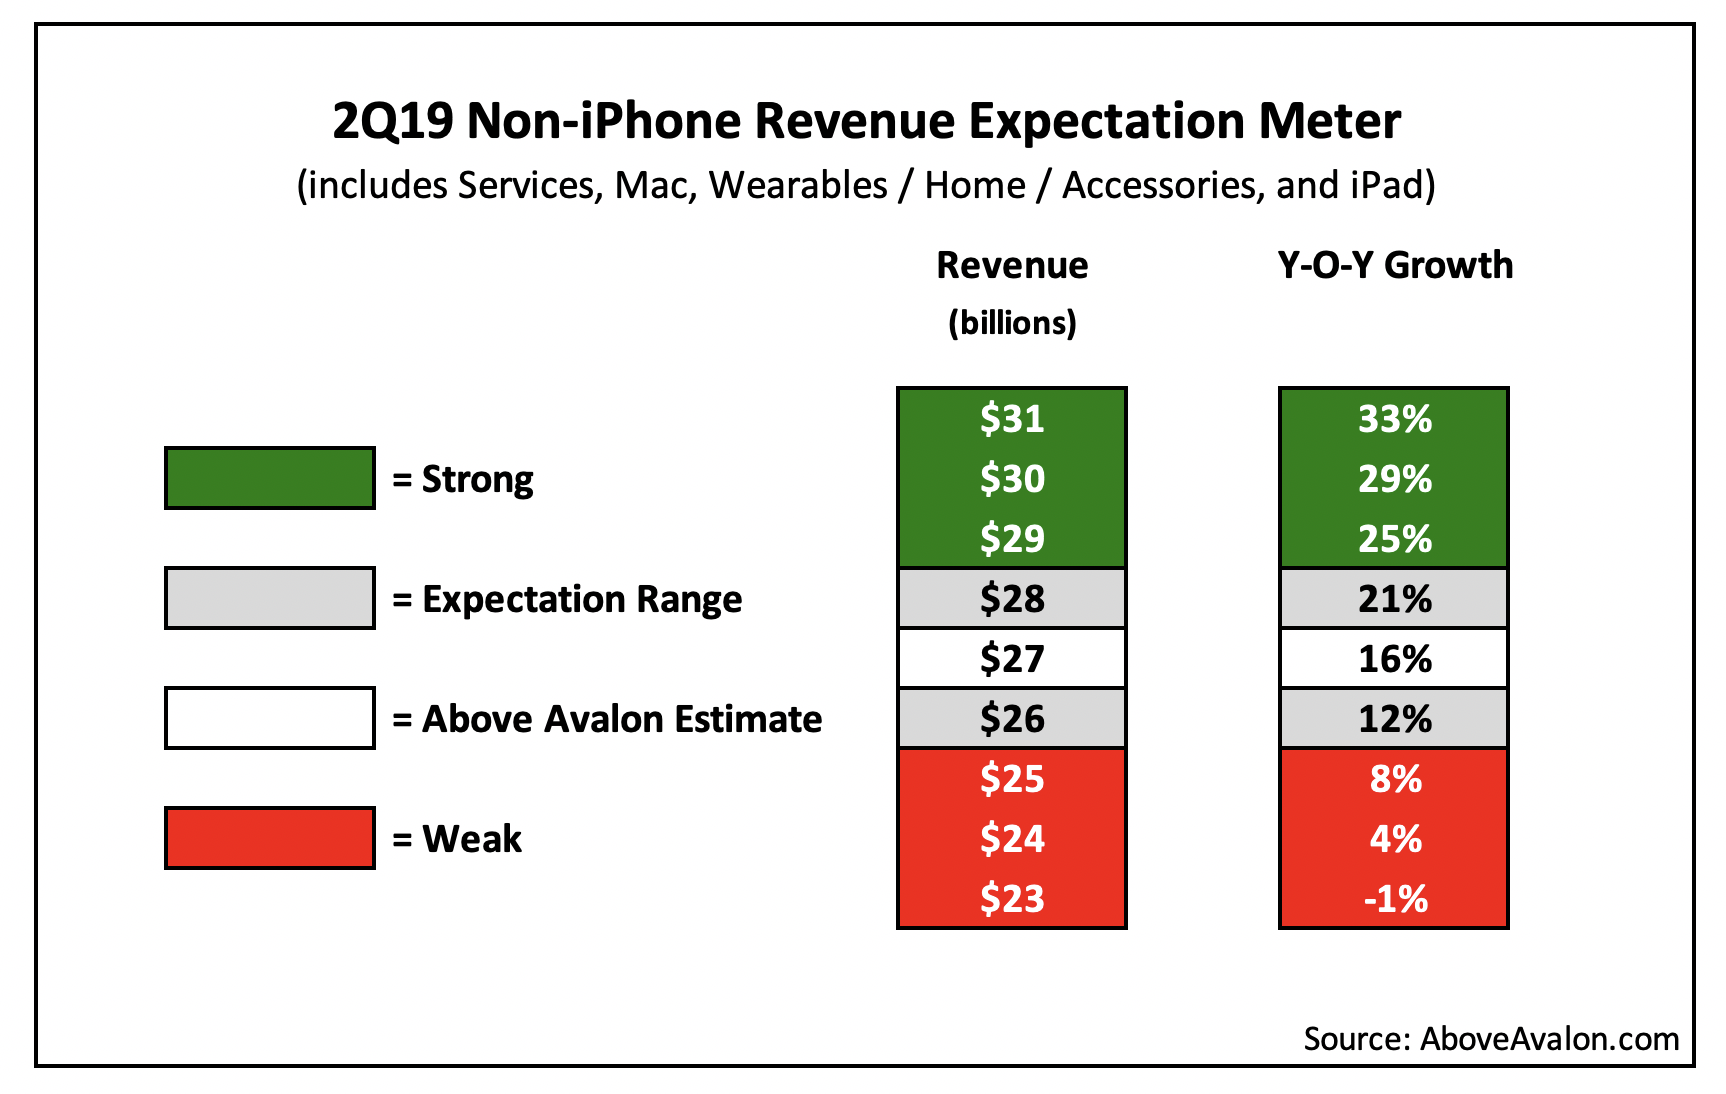 2Q19 Non-iPhone Revenue Expectation Meter (AboveAvalon.com)